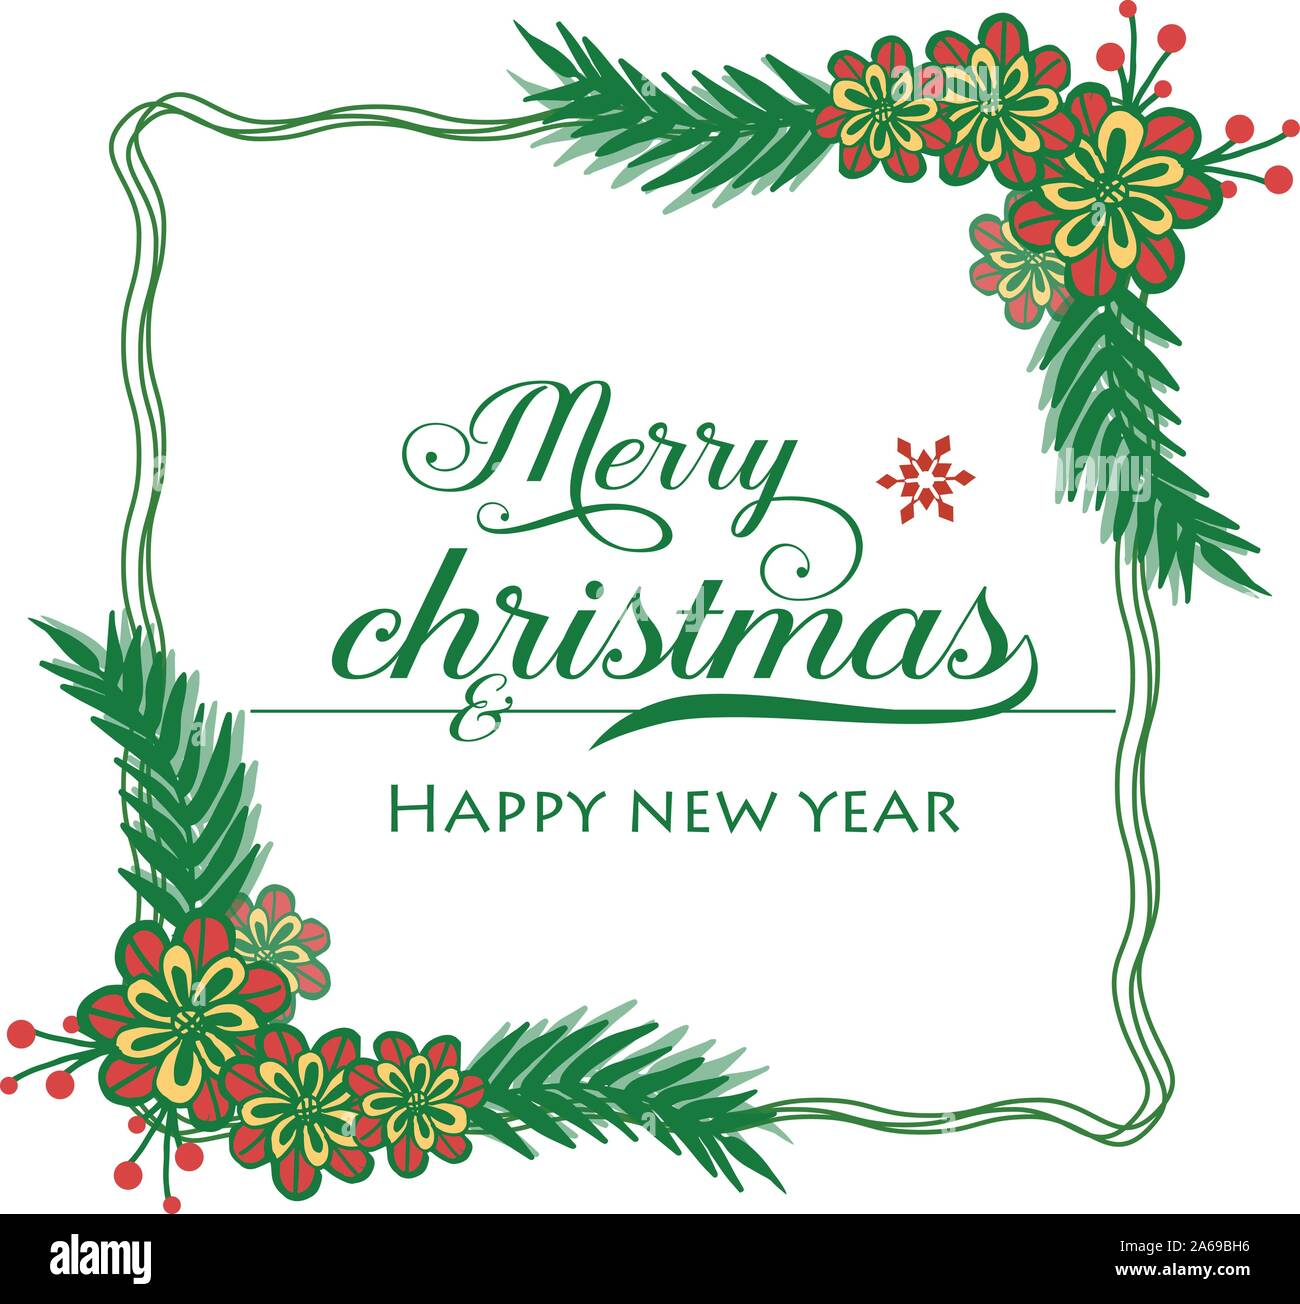 Merry Christmas and Happy New Year Clip Art